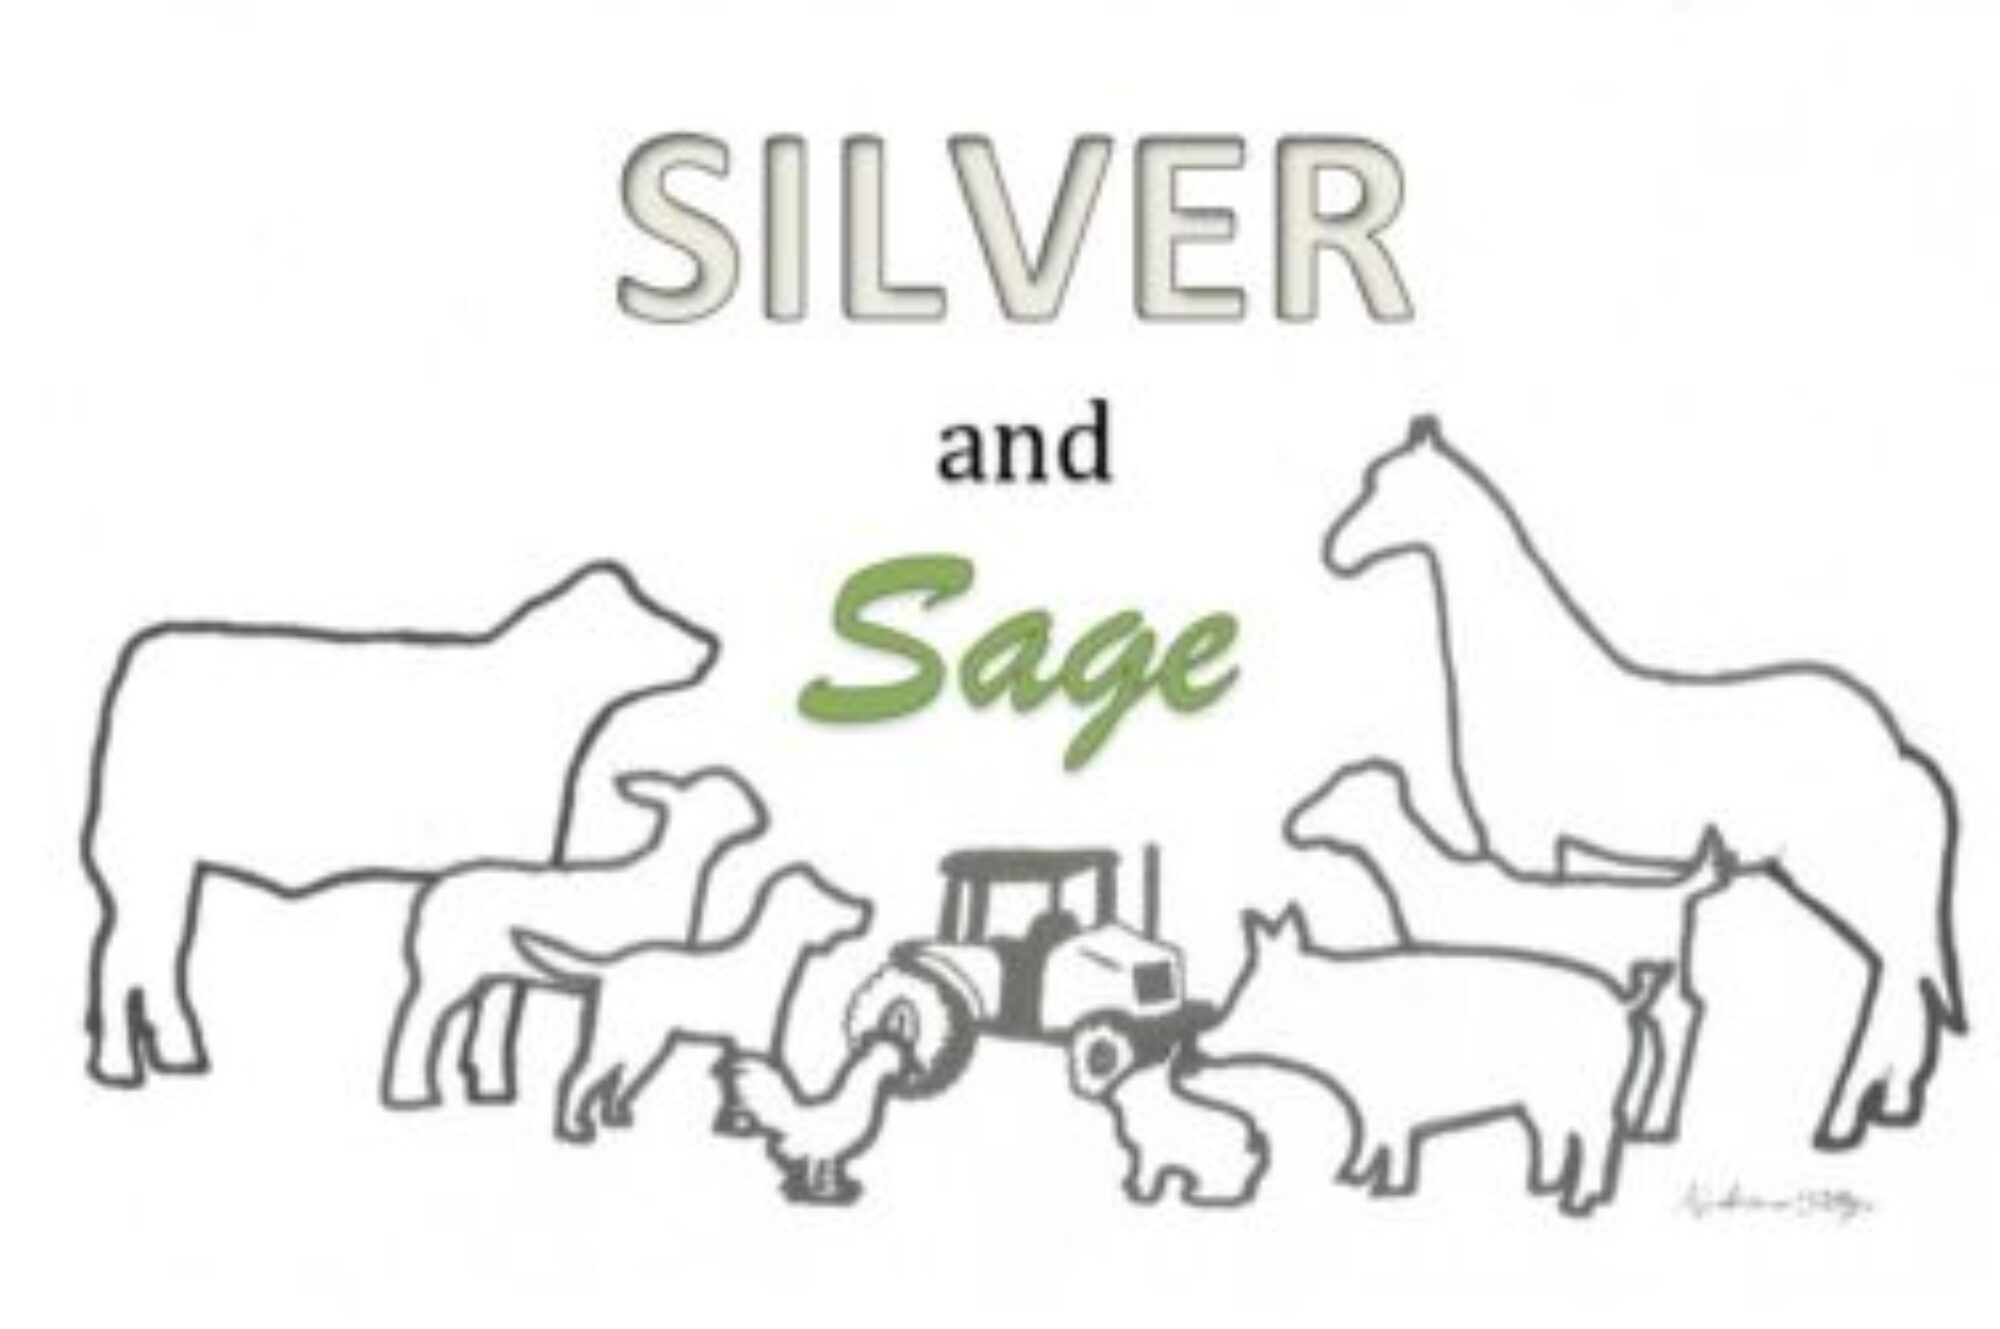 The Silver & Sage Show